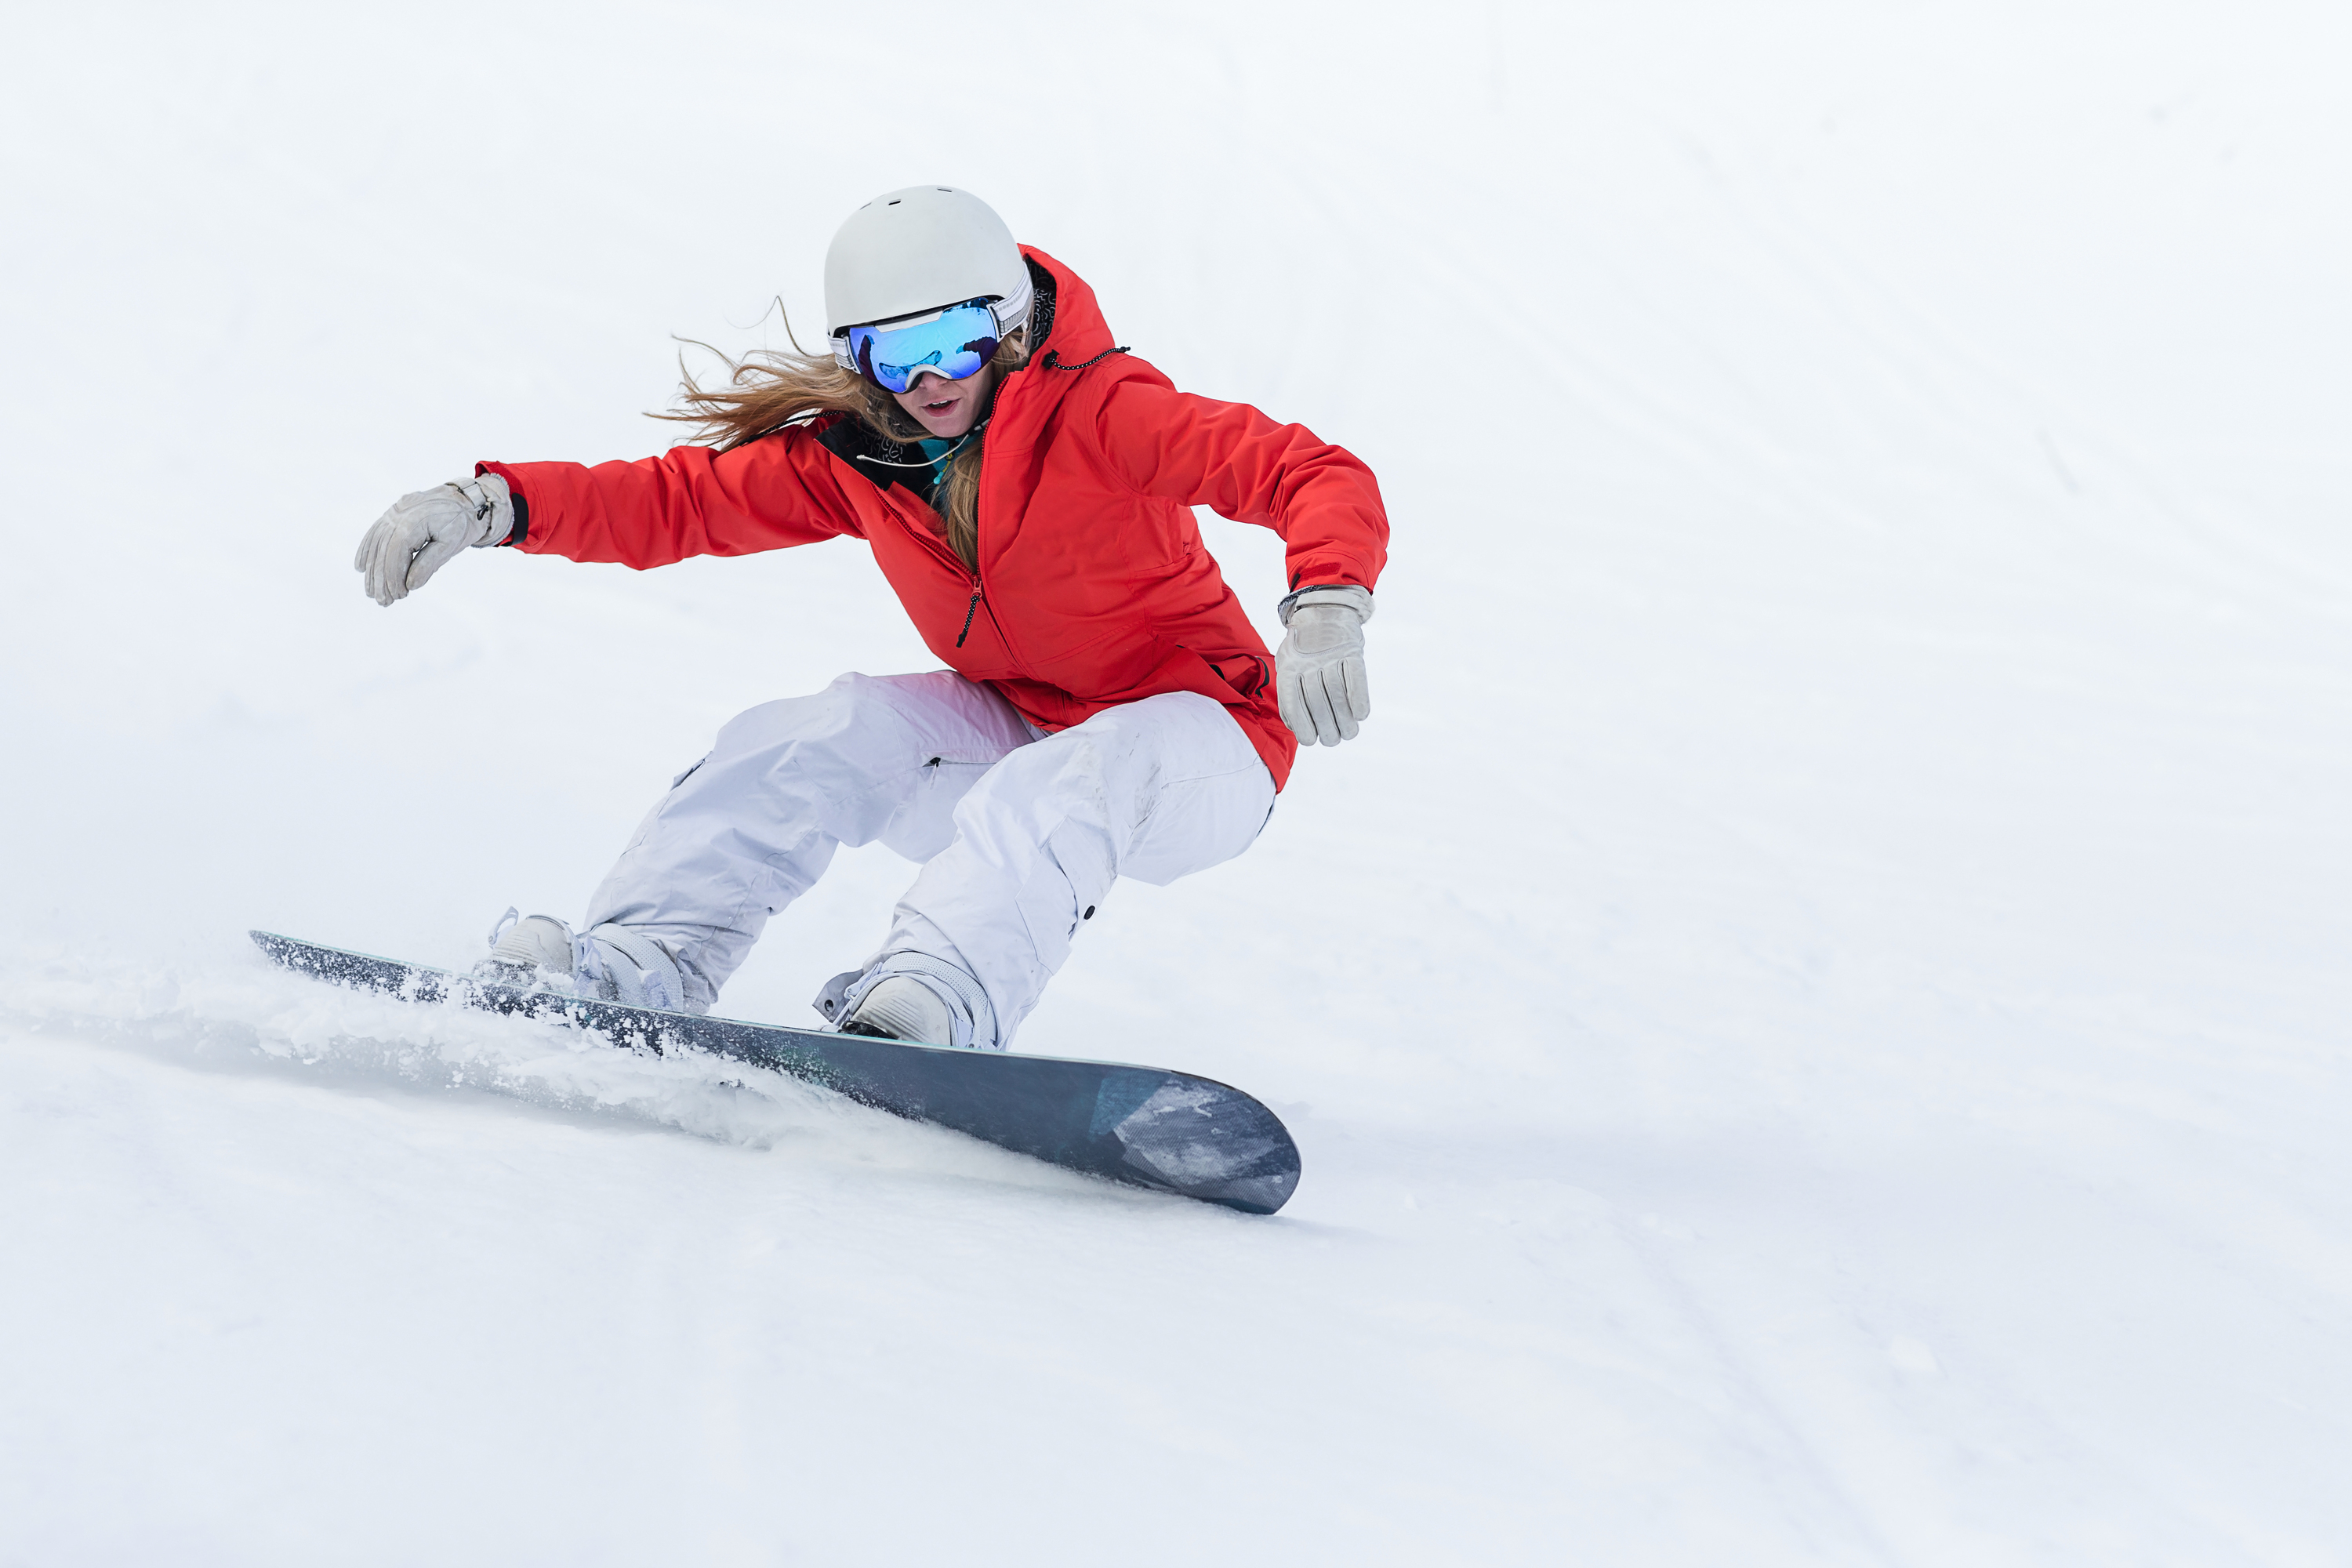 Hit the slopes at the best snowboarding and skiing resorts near Chicago